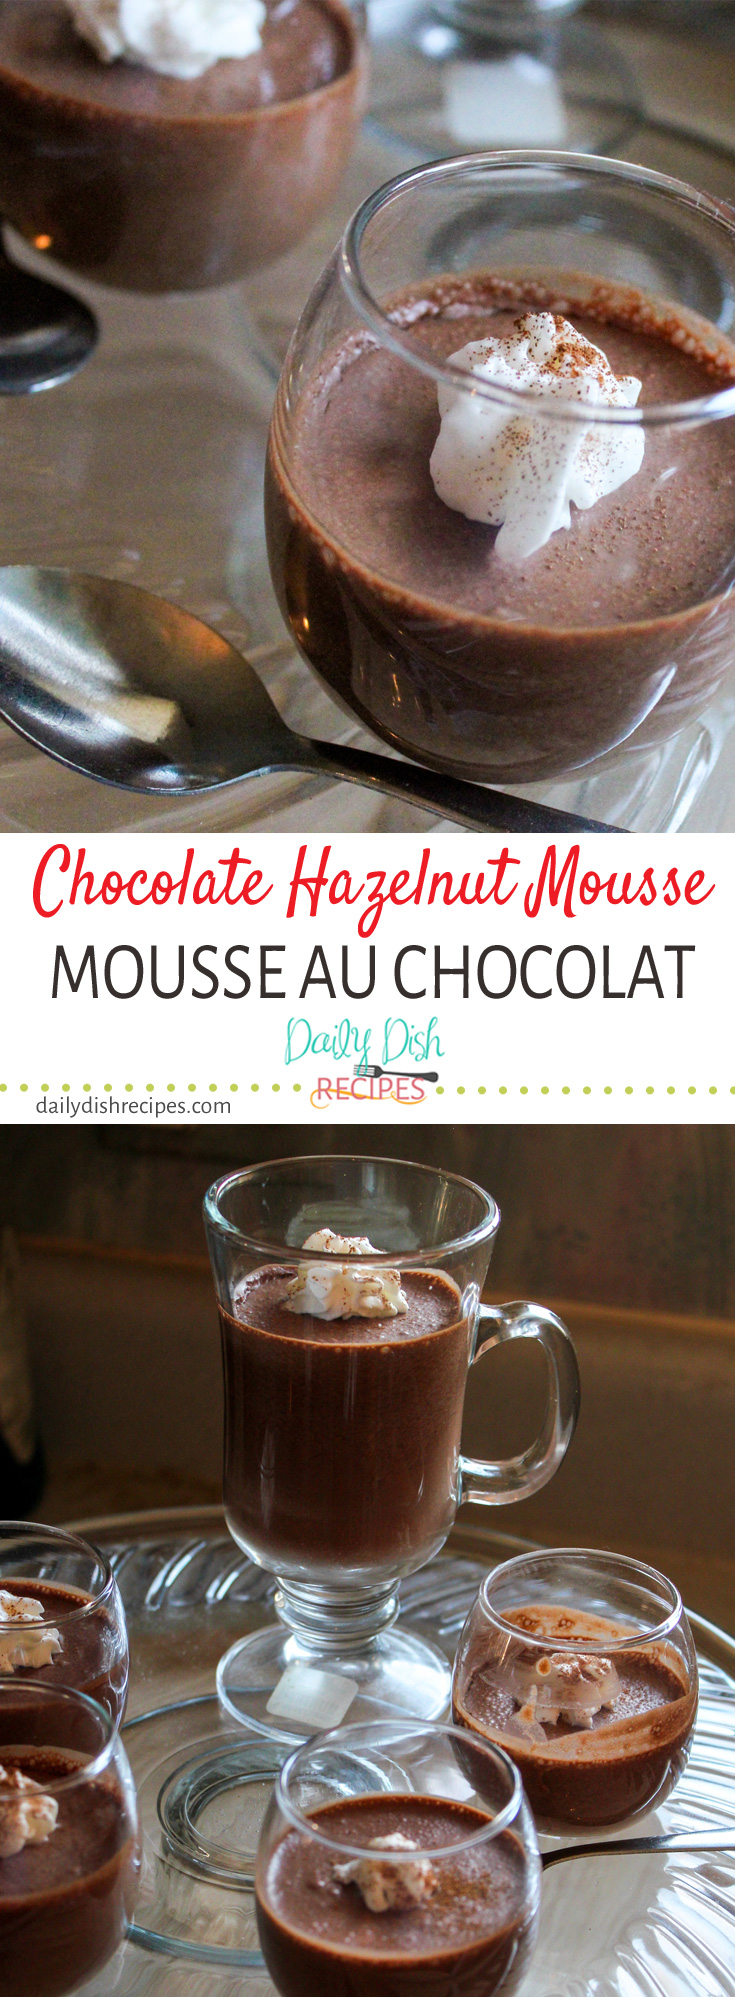 Rich, decadent, delicious fluffy Chocolate Hazelnut Mousse (mousse au chocolat). The perfect dessert for an elegant party or simply just because ... chocolate!